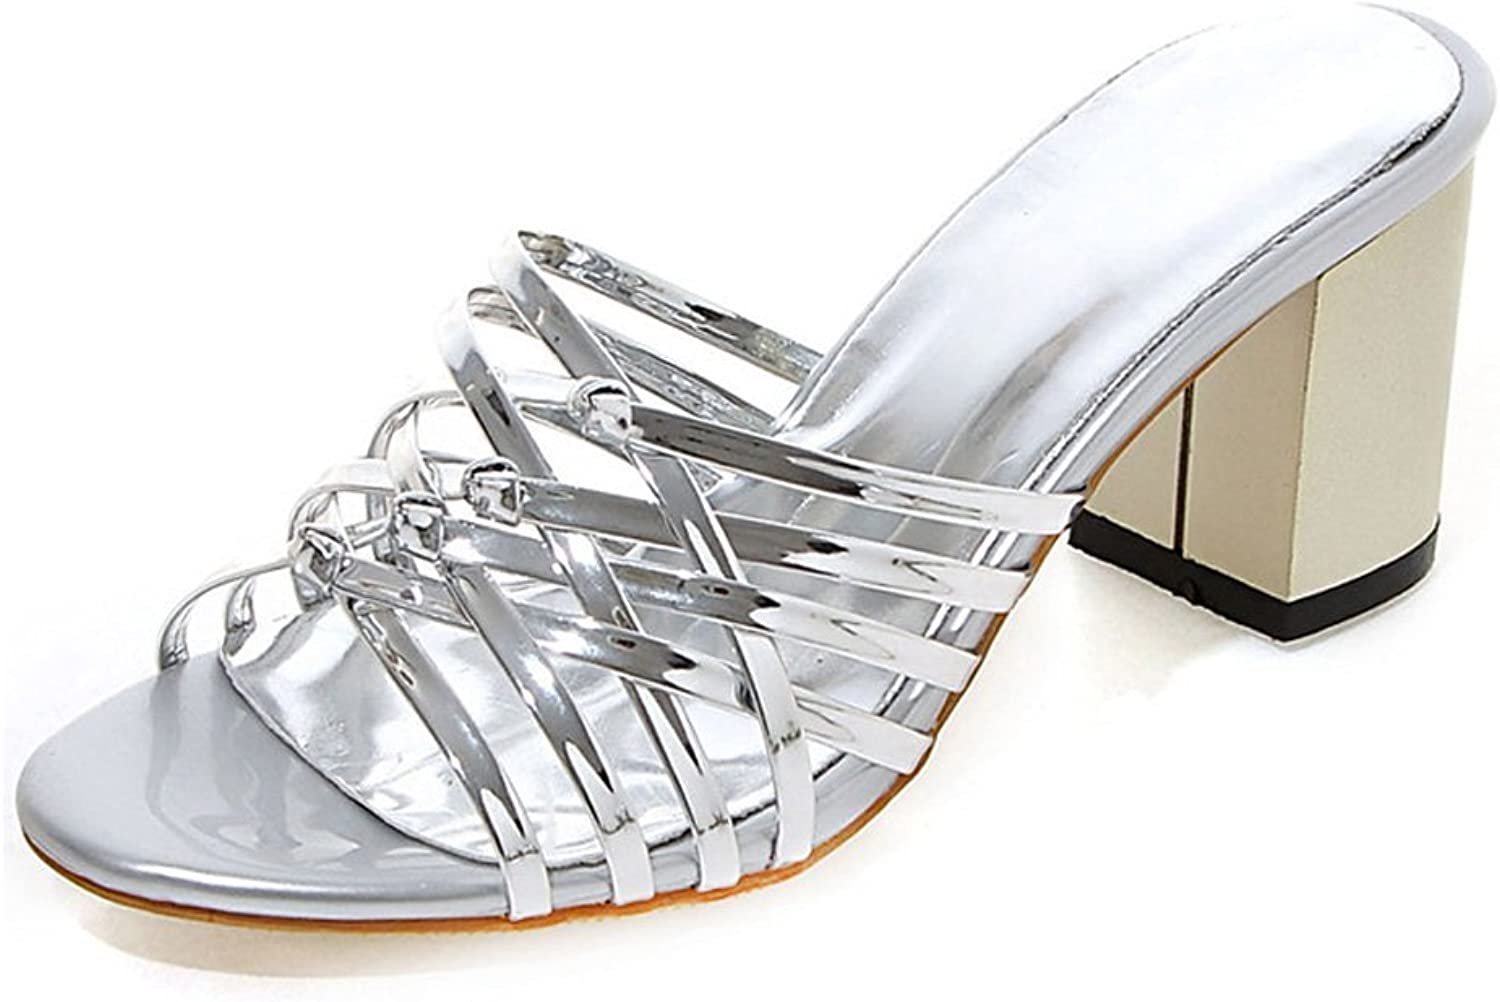 GenePeg Wedge Sandals for Women 2018 Open Toe High Heels Slip-On Patent Leather Heeled shoes